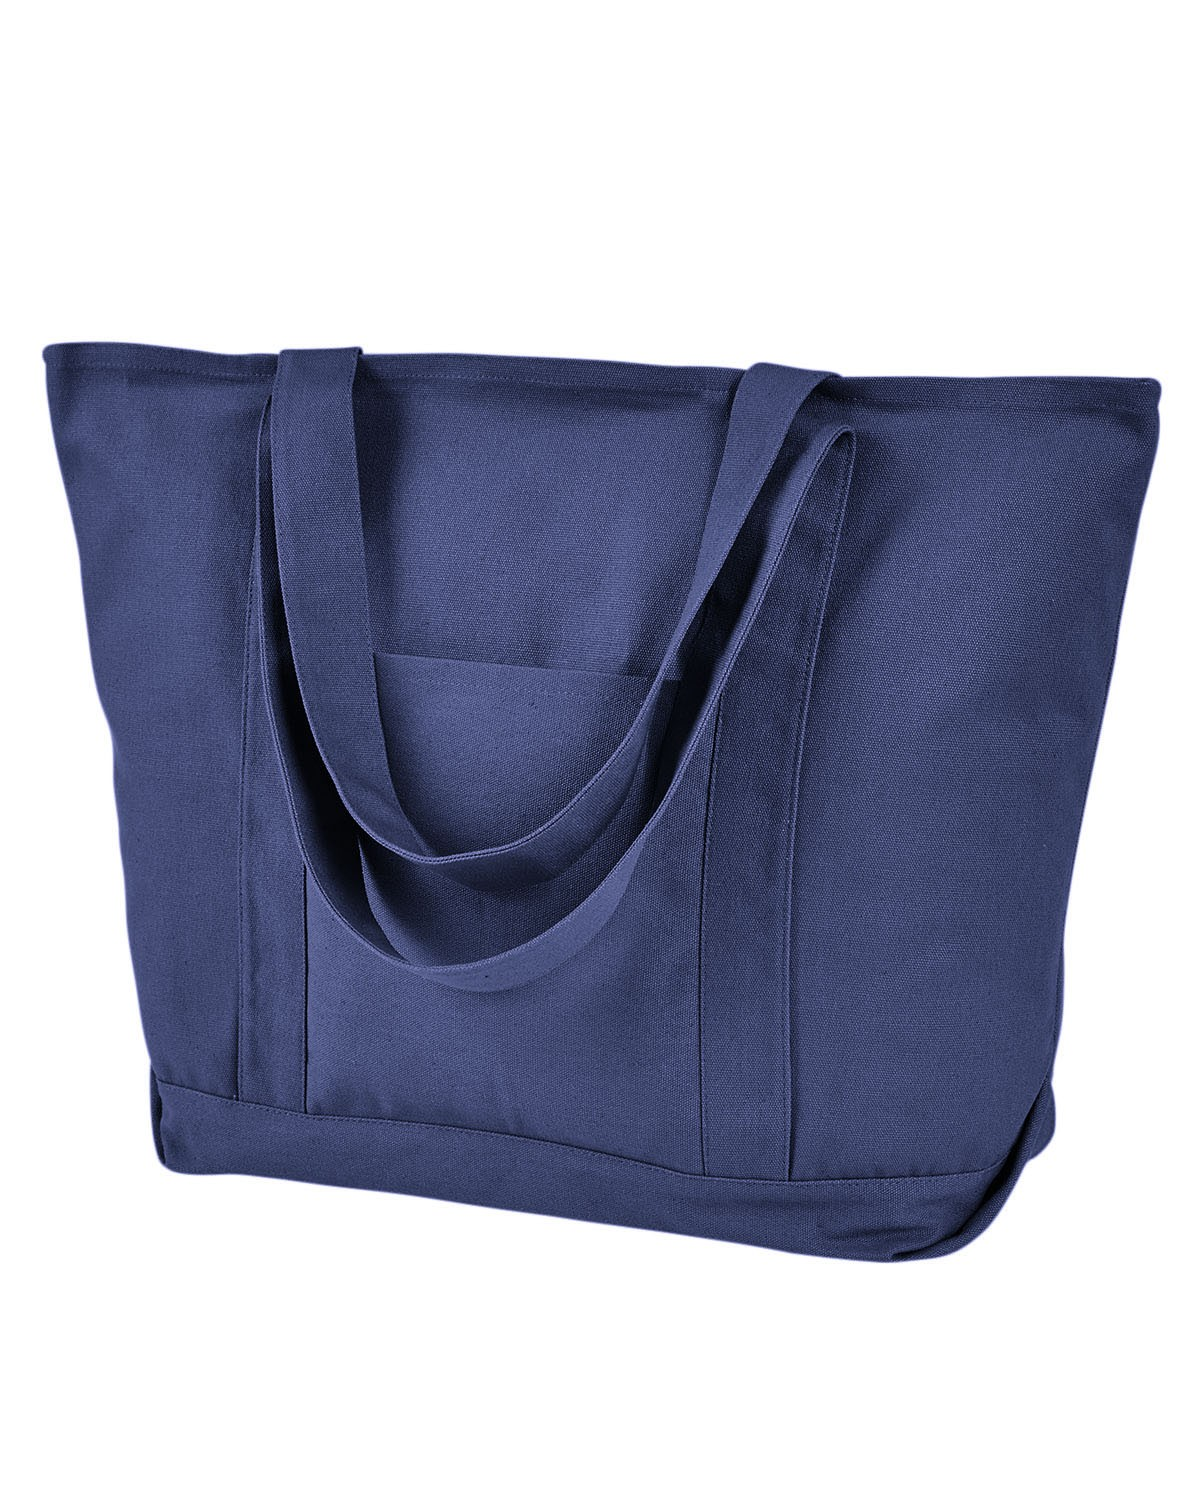 8879 Liberty Bags WASHED NAVY